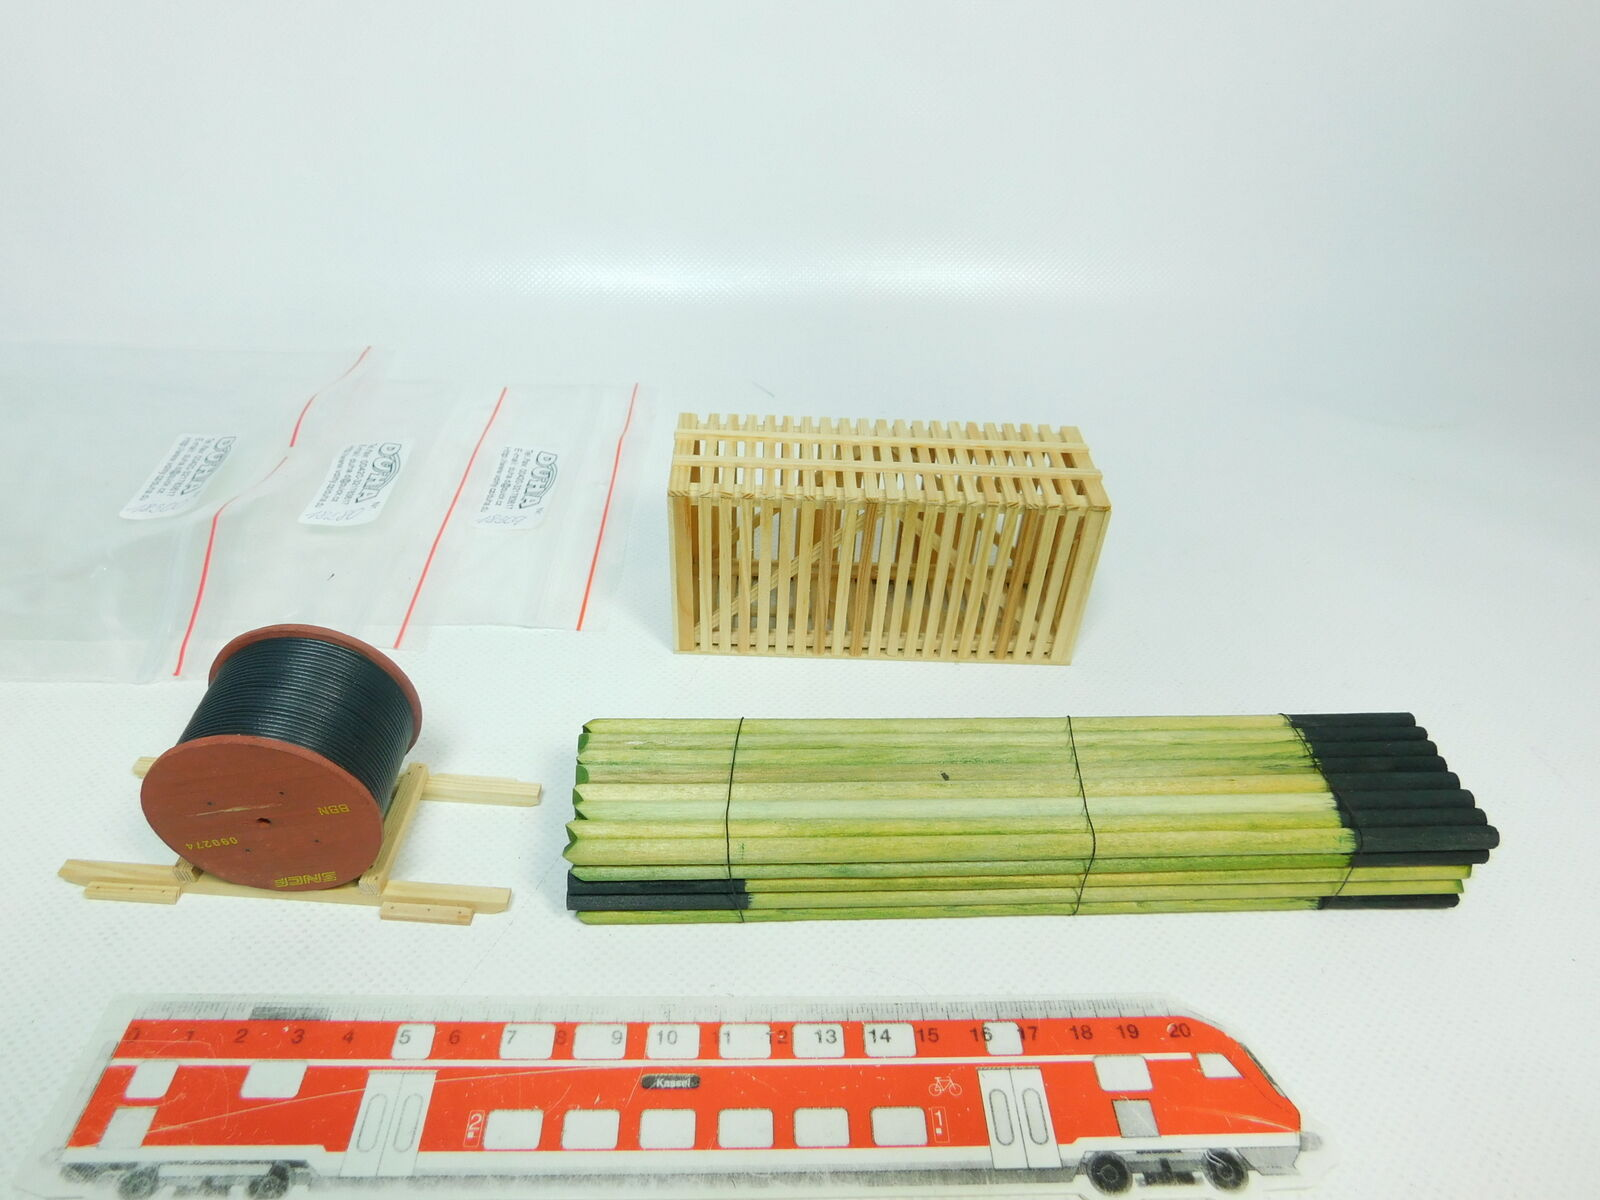 Br329-0, 5 x 0 scale duha load  18280+18300 Holz-stämme + 18309, new +